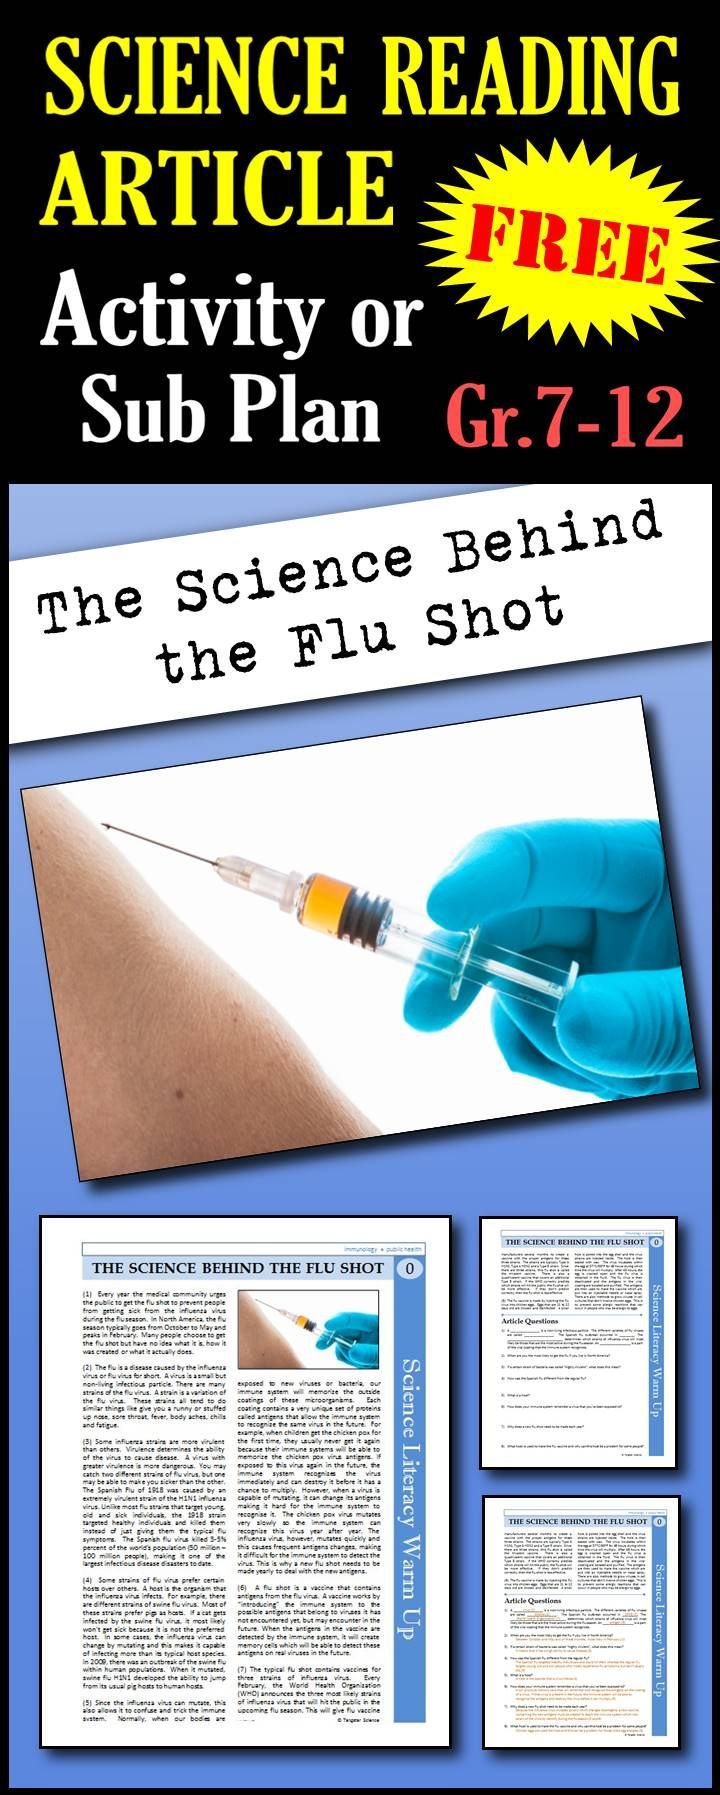 Free!  In this article, students will read about viruses, the types of viruses that cause the flu, how the immune system detects and remembers viruses, how vaccines like the flu shot work and how the flu shot vaccine is manufactured.. This is a great in class activity, homework assignment, weekly science reading assignment, sub plan or in school suspension plan. Use this to save time looking for engaging and appropriate articles with questions!